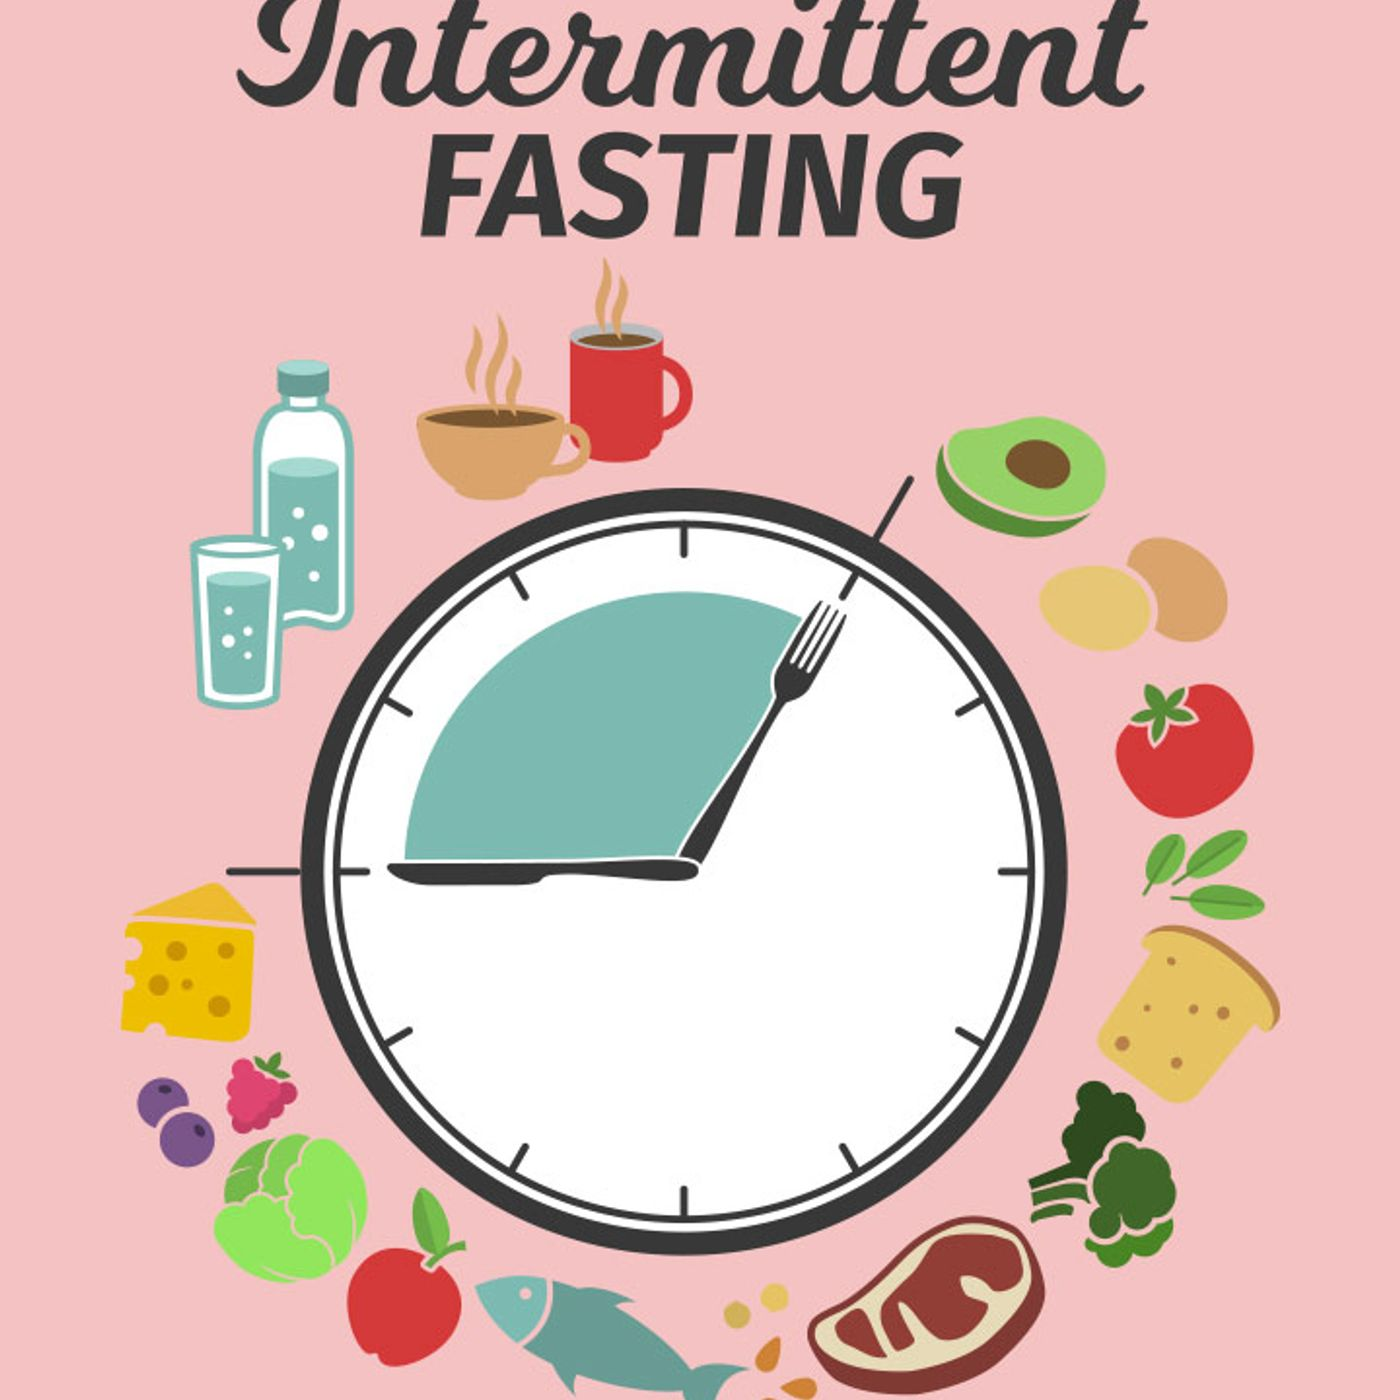 Types of Intermittent Fasting and Who Should be doing it, by Karen Malkin